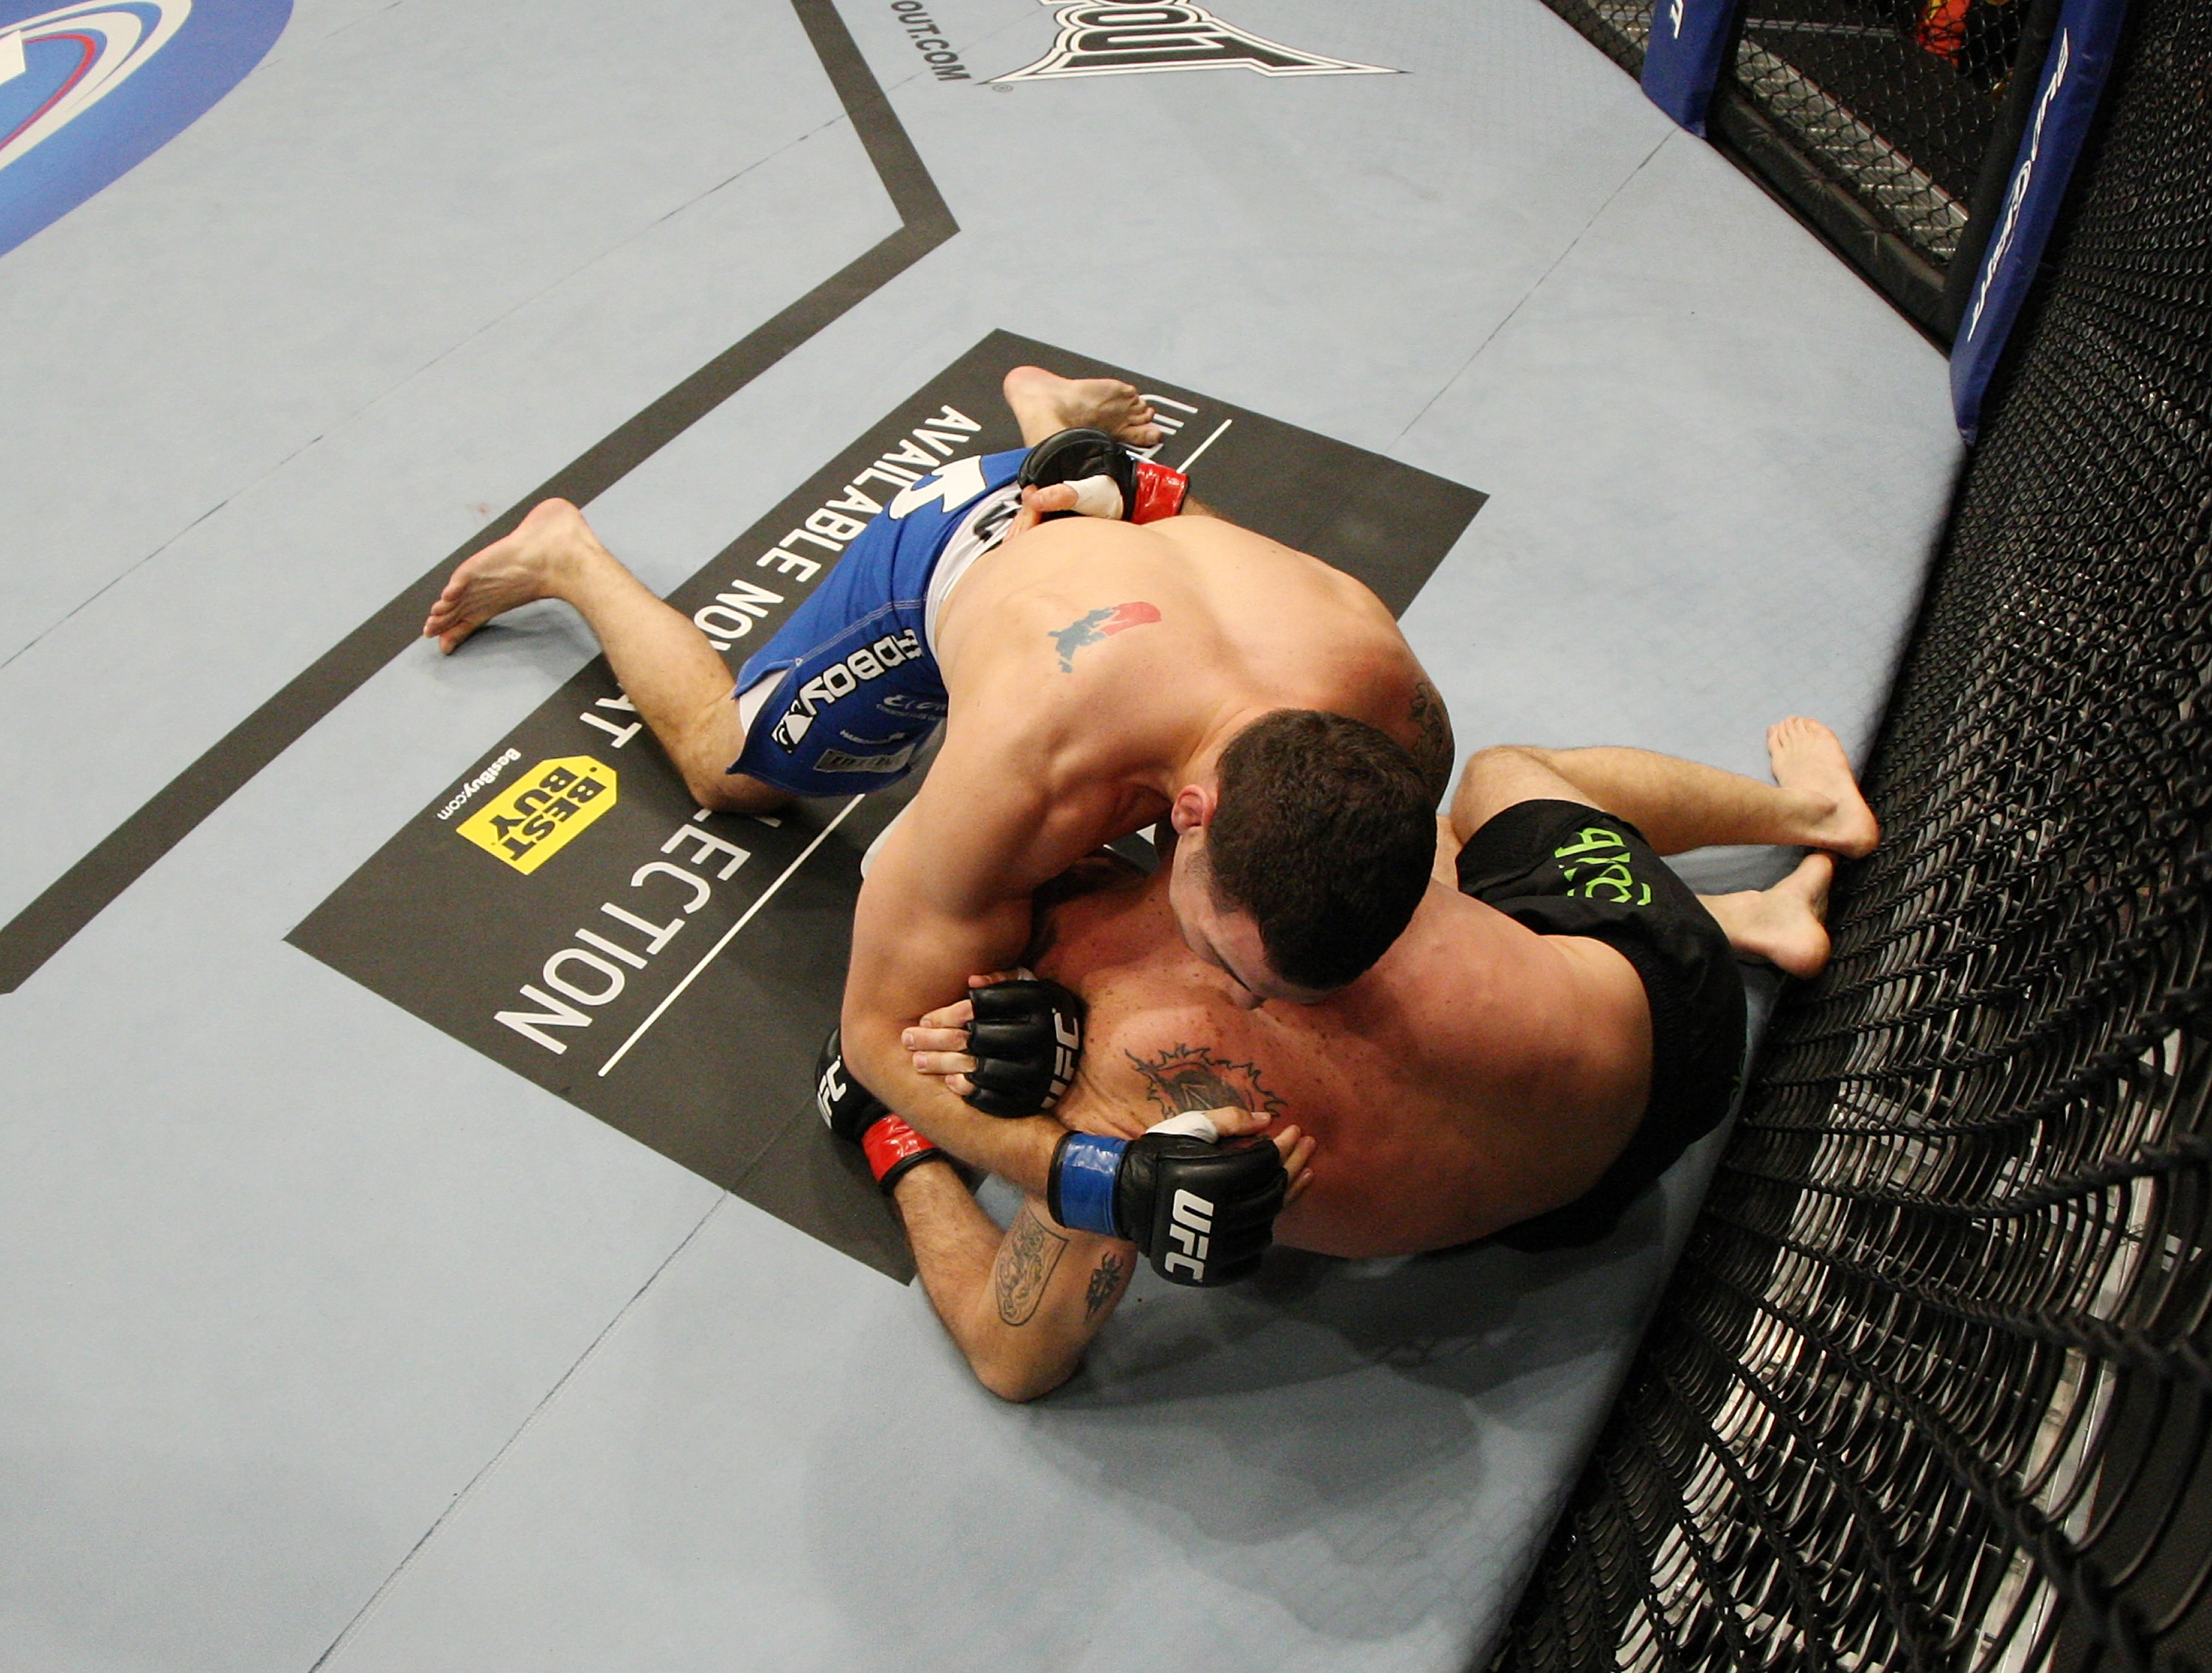 SAN JOSE, CA - NOVEMBER 19: Chris Weidman with a choke hold takes Tom Lawlor to the mat during an UFC Middleweight bout at the HP Pavillion on November 19, 2011 in San Jose, California.  (Photo by Josh Hedges/Zuffa LLC/Zuffa LLC via Getty Images)